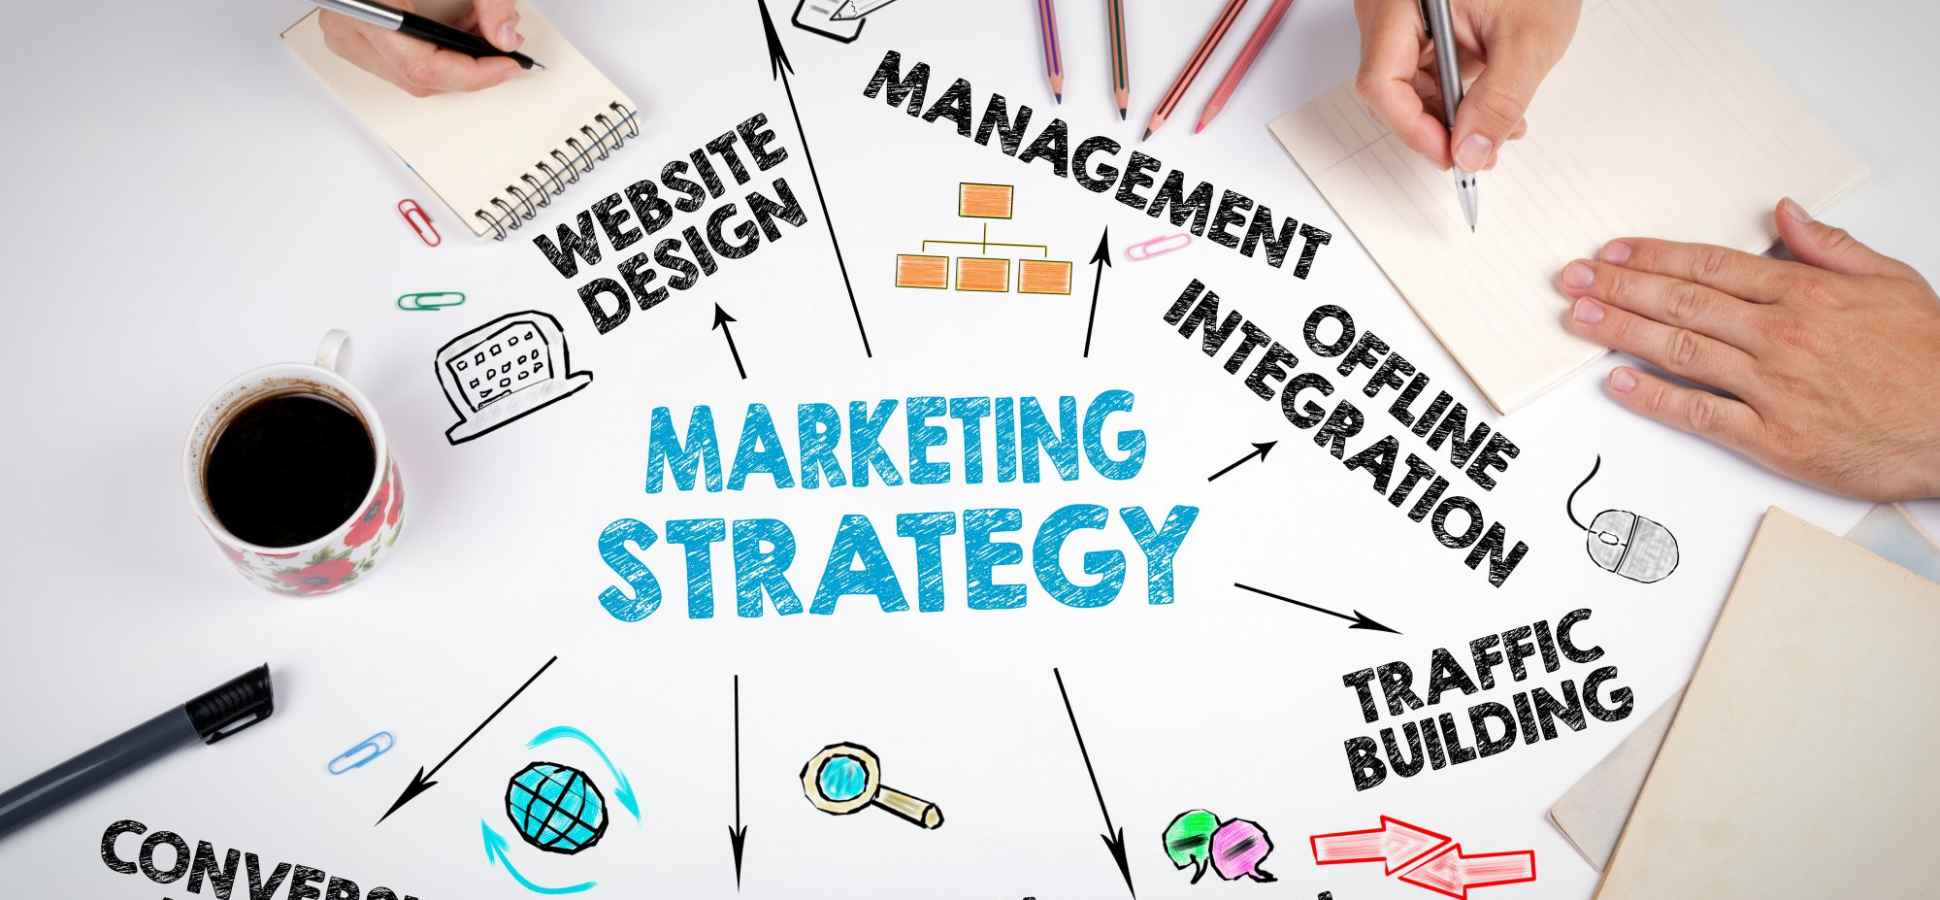 7 Tools to Help You Master the Art of DIY Digital Marketing